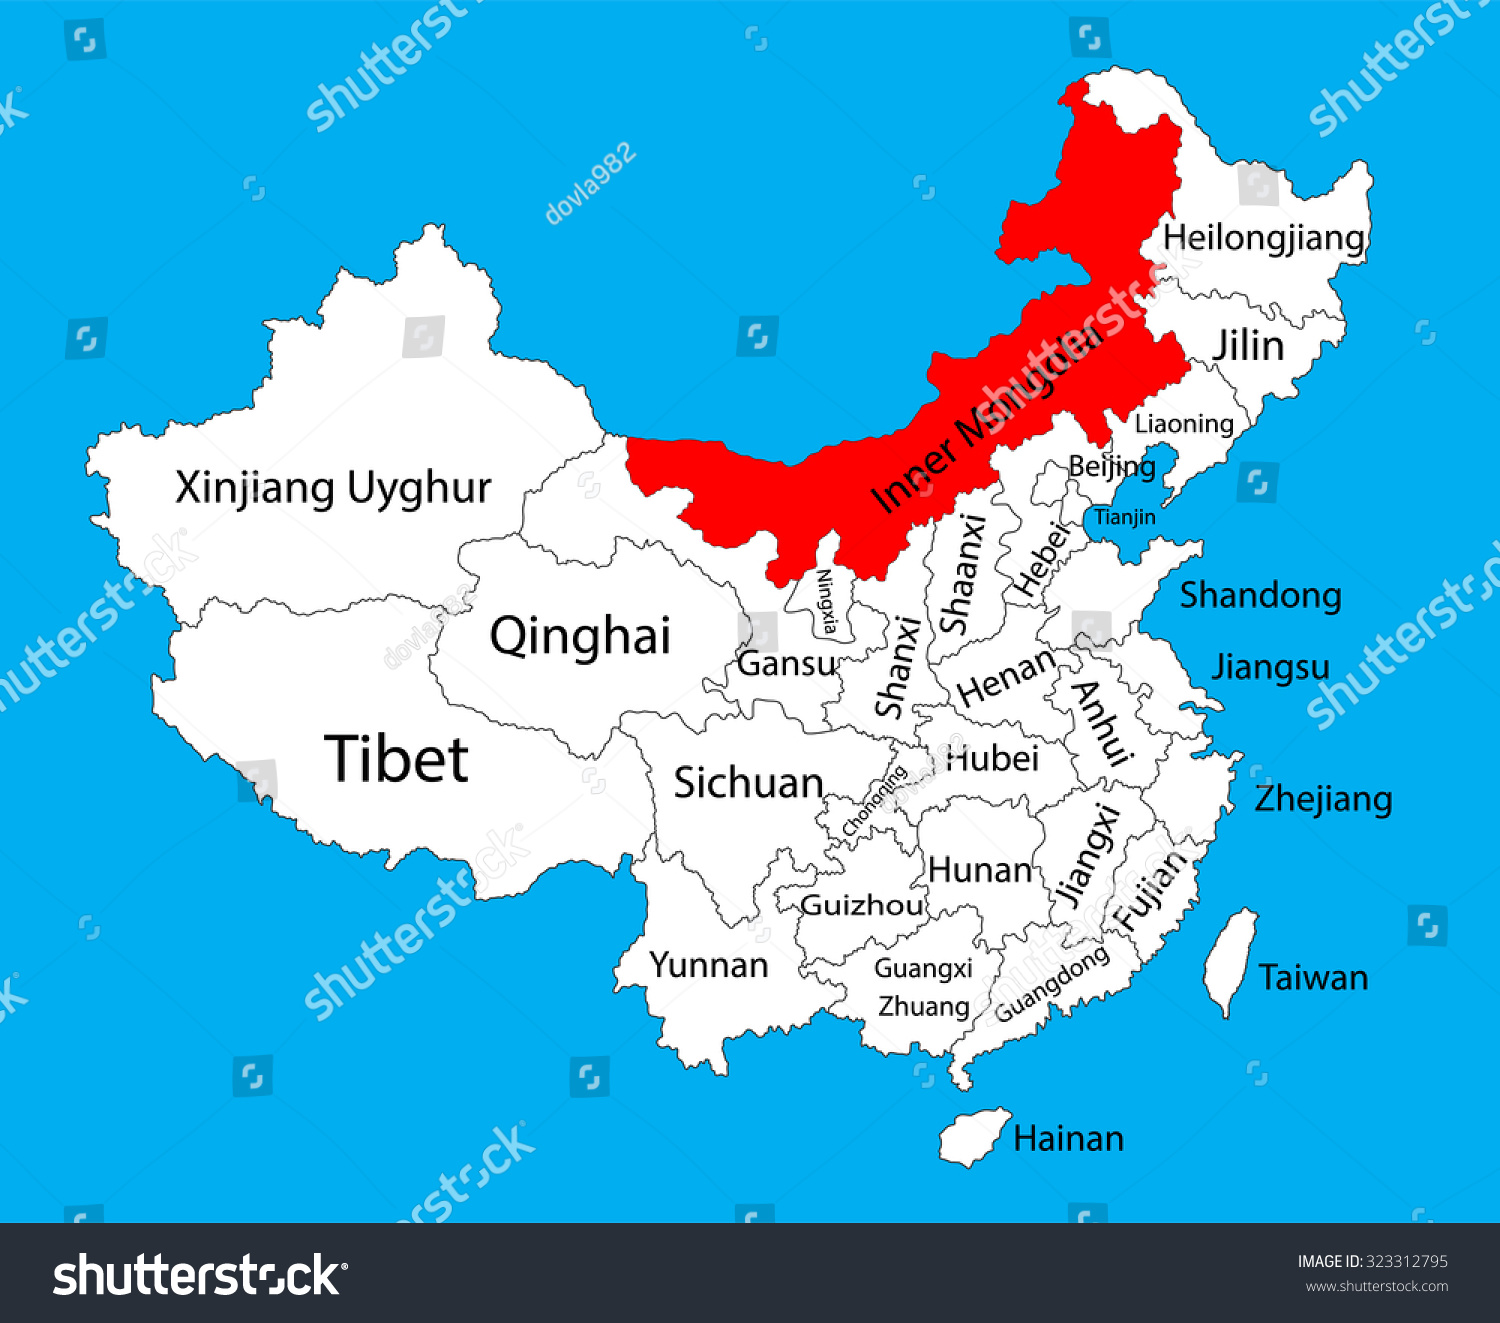 Inner mongolia province map china vector stock vector 323312795 inner mongolia province map china vector map illustration isolated on background editable china map gumiabroncs Gallery